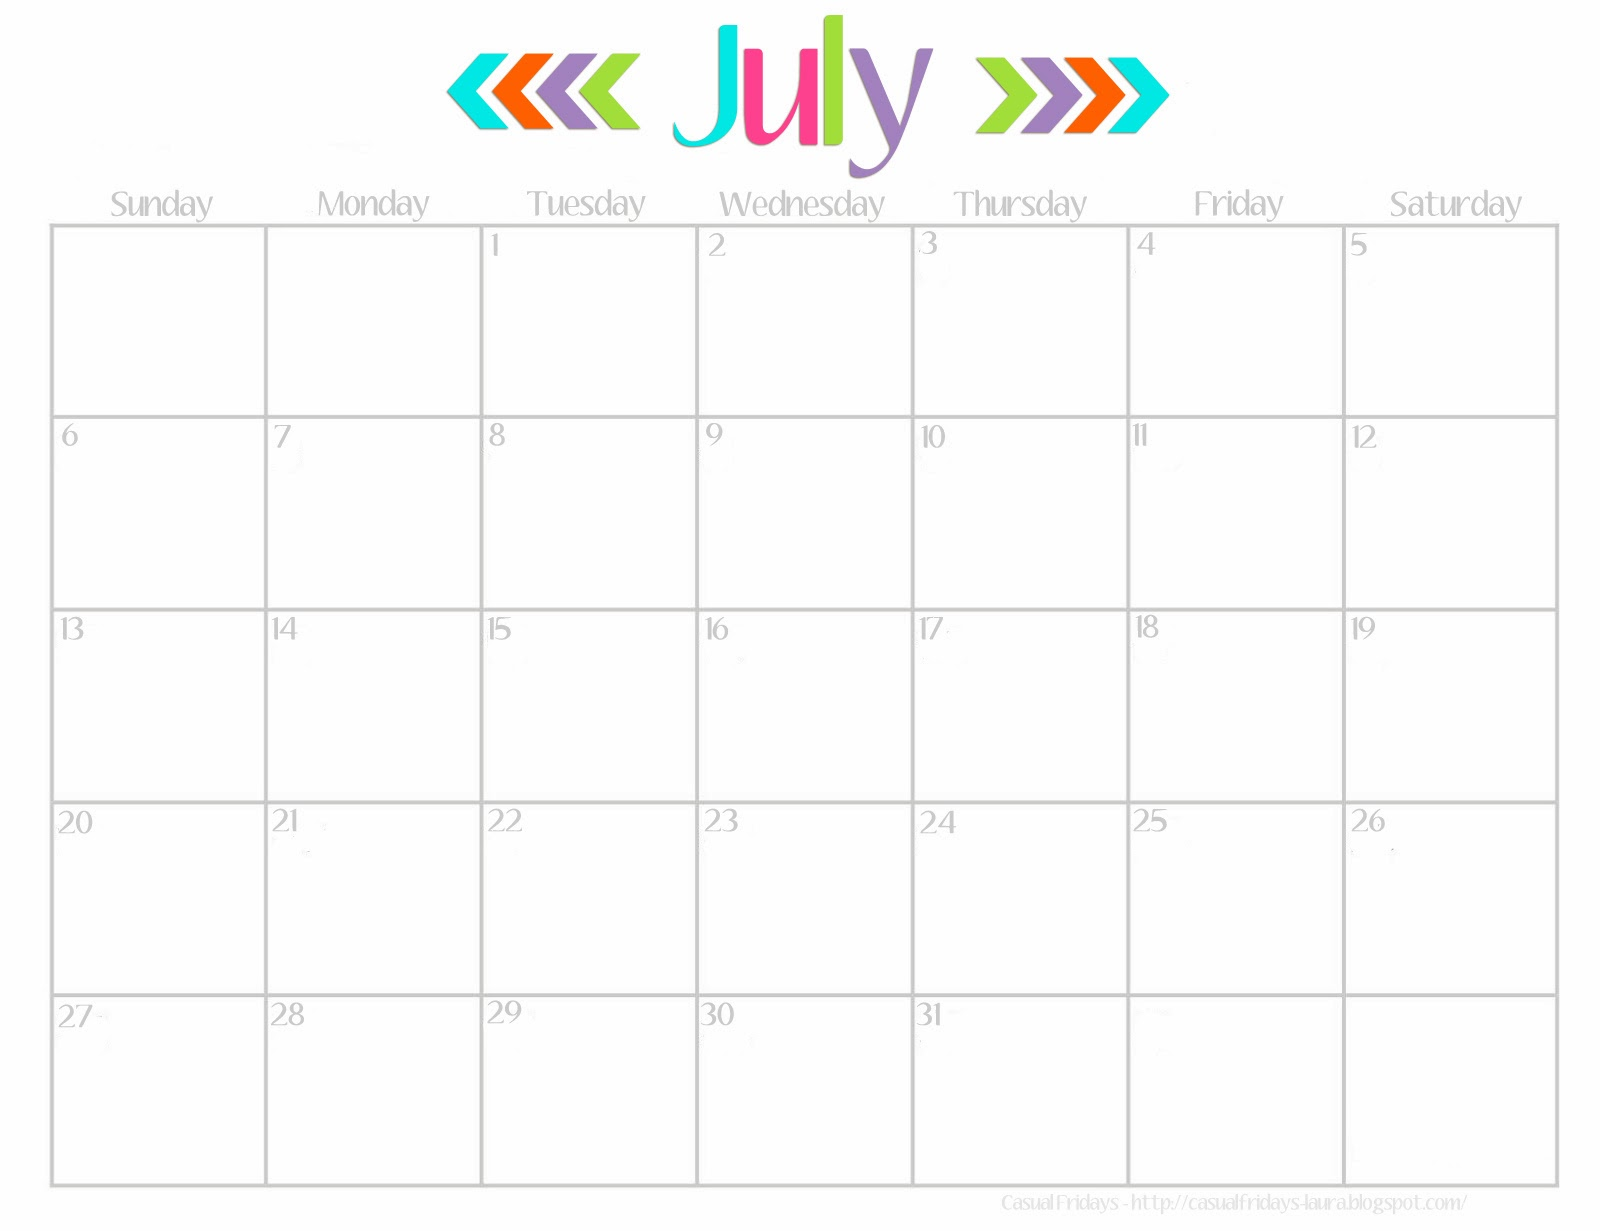 6 Images of Cute July Calendar Printable